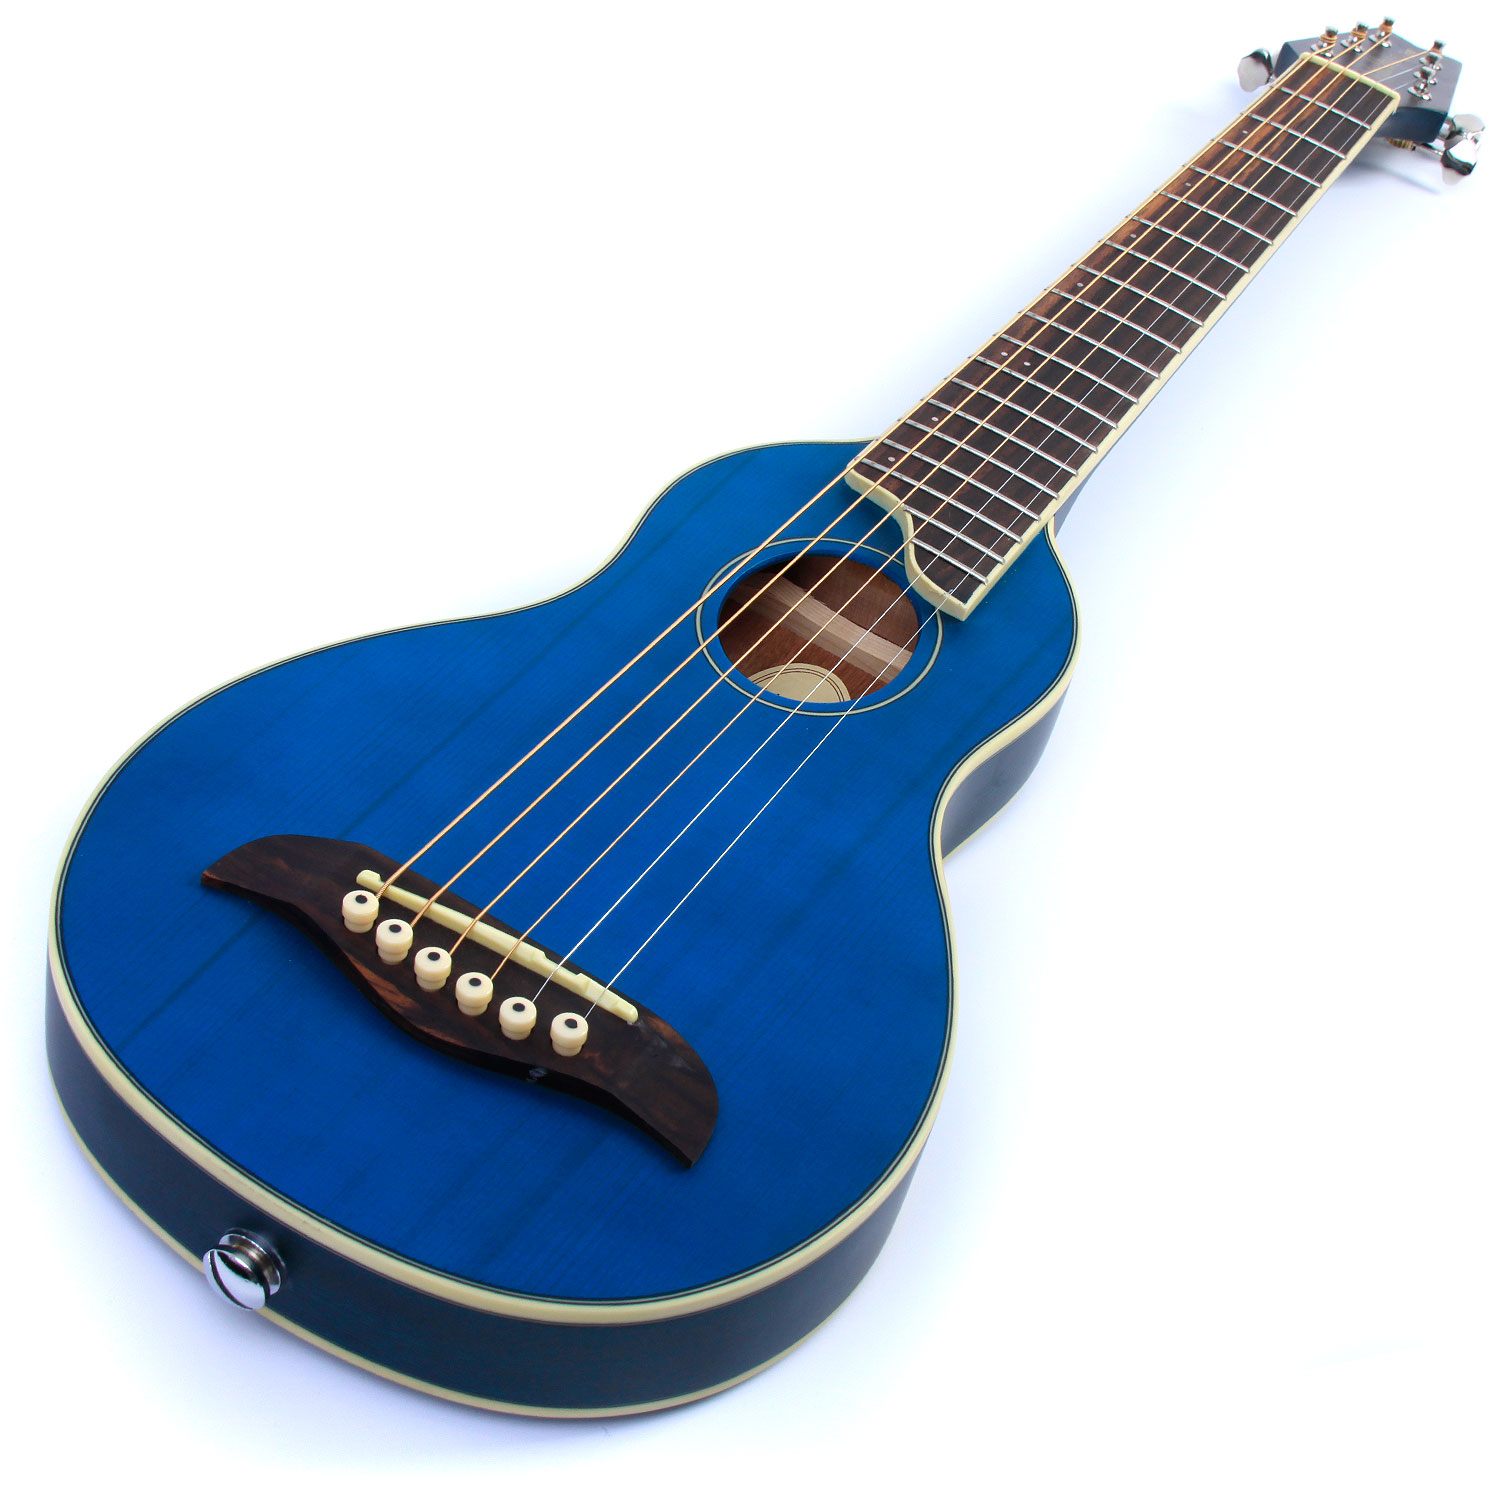 Washburn R010 Rover Acoustic Small Backpacker Travel ...